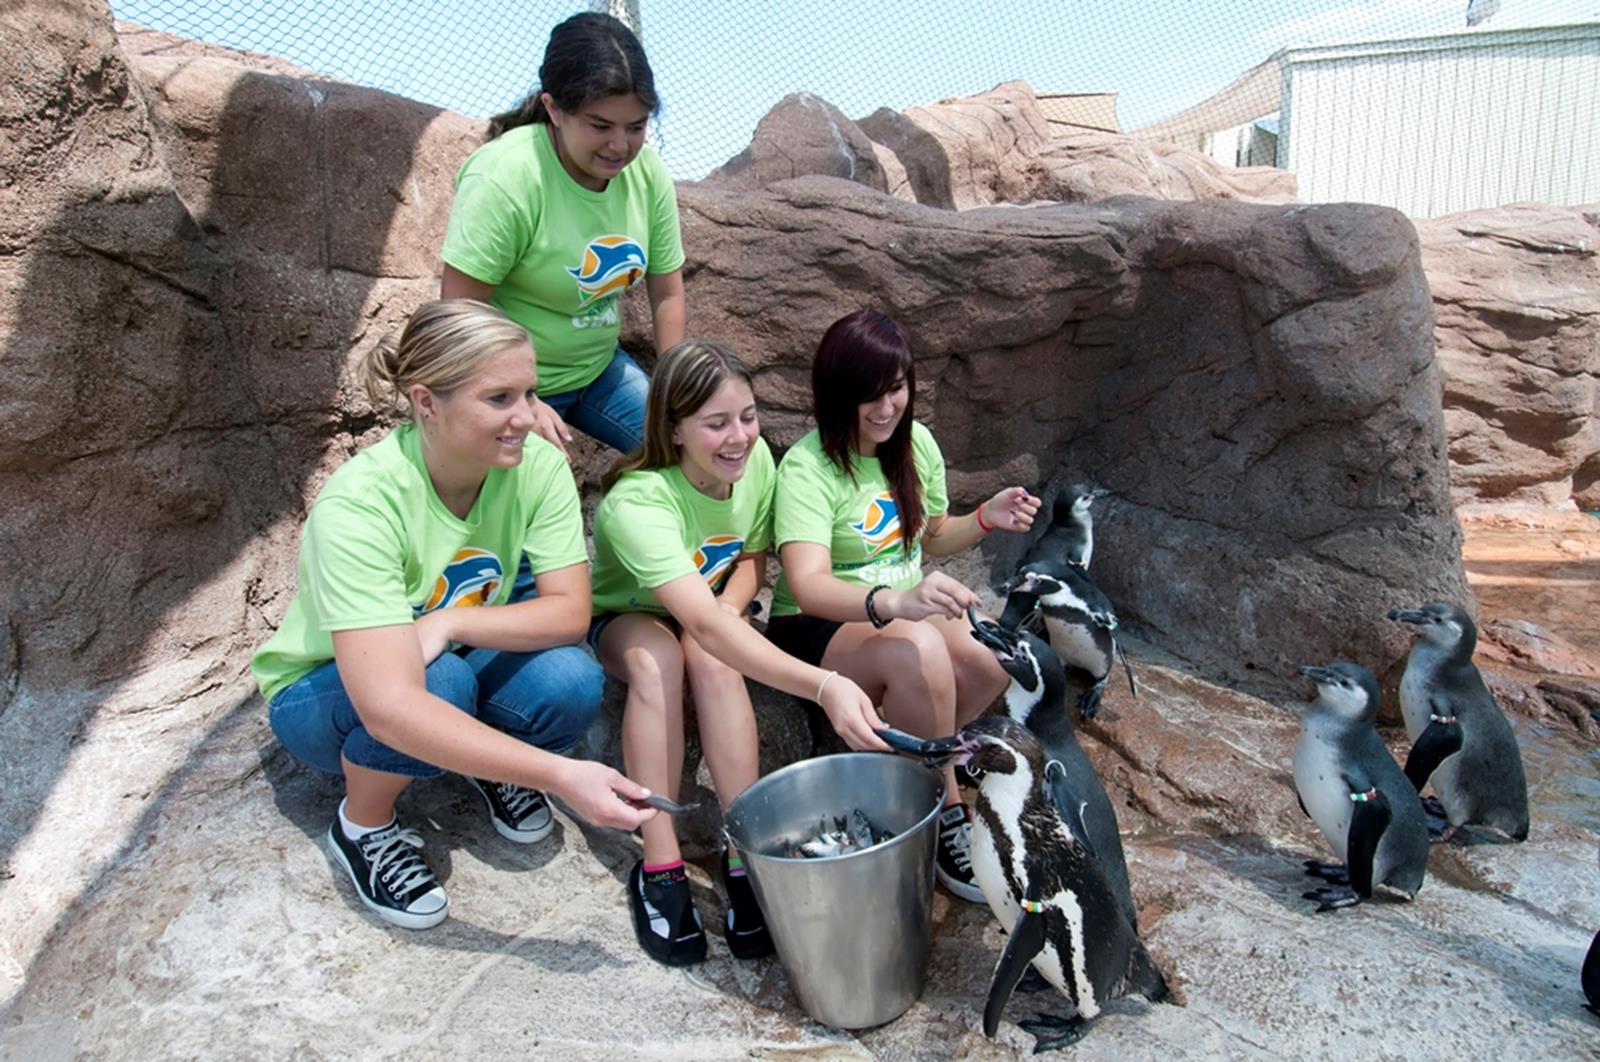 Sea World campers with penguins. Credit: Sea World San Diego